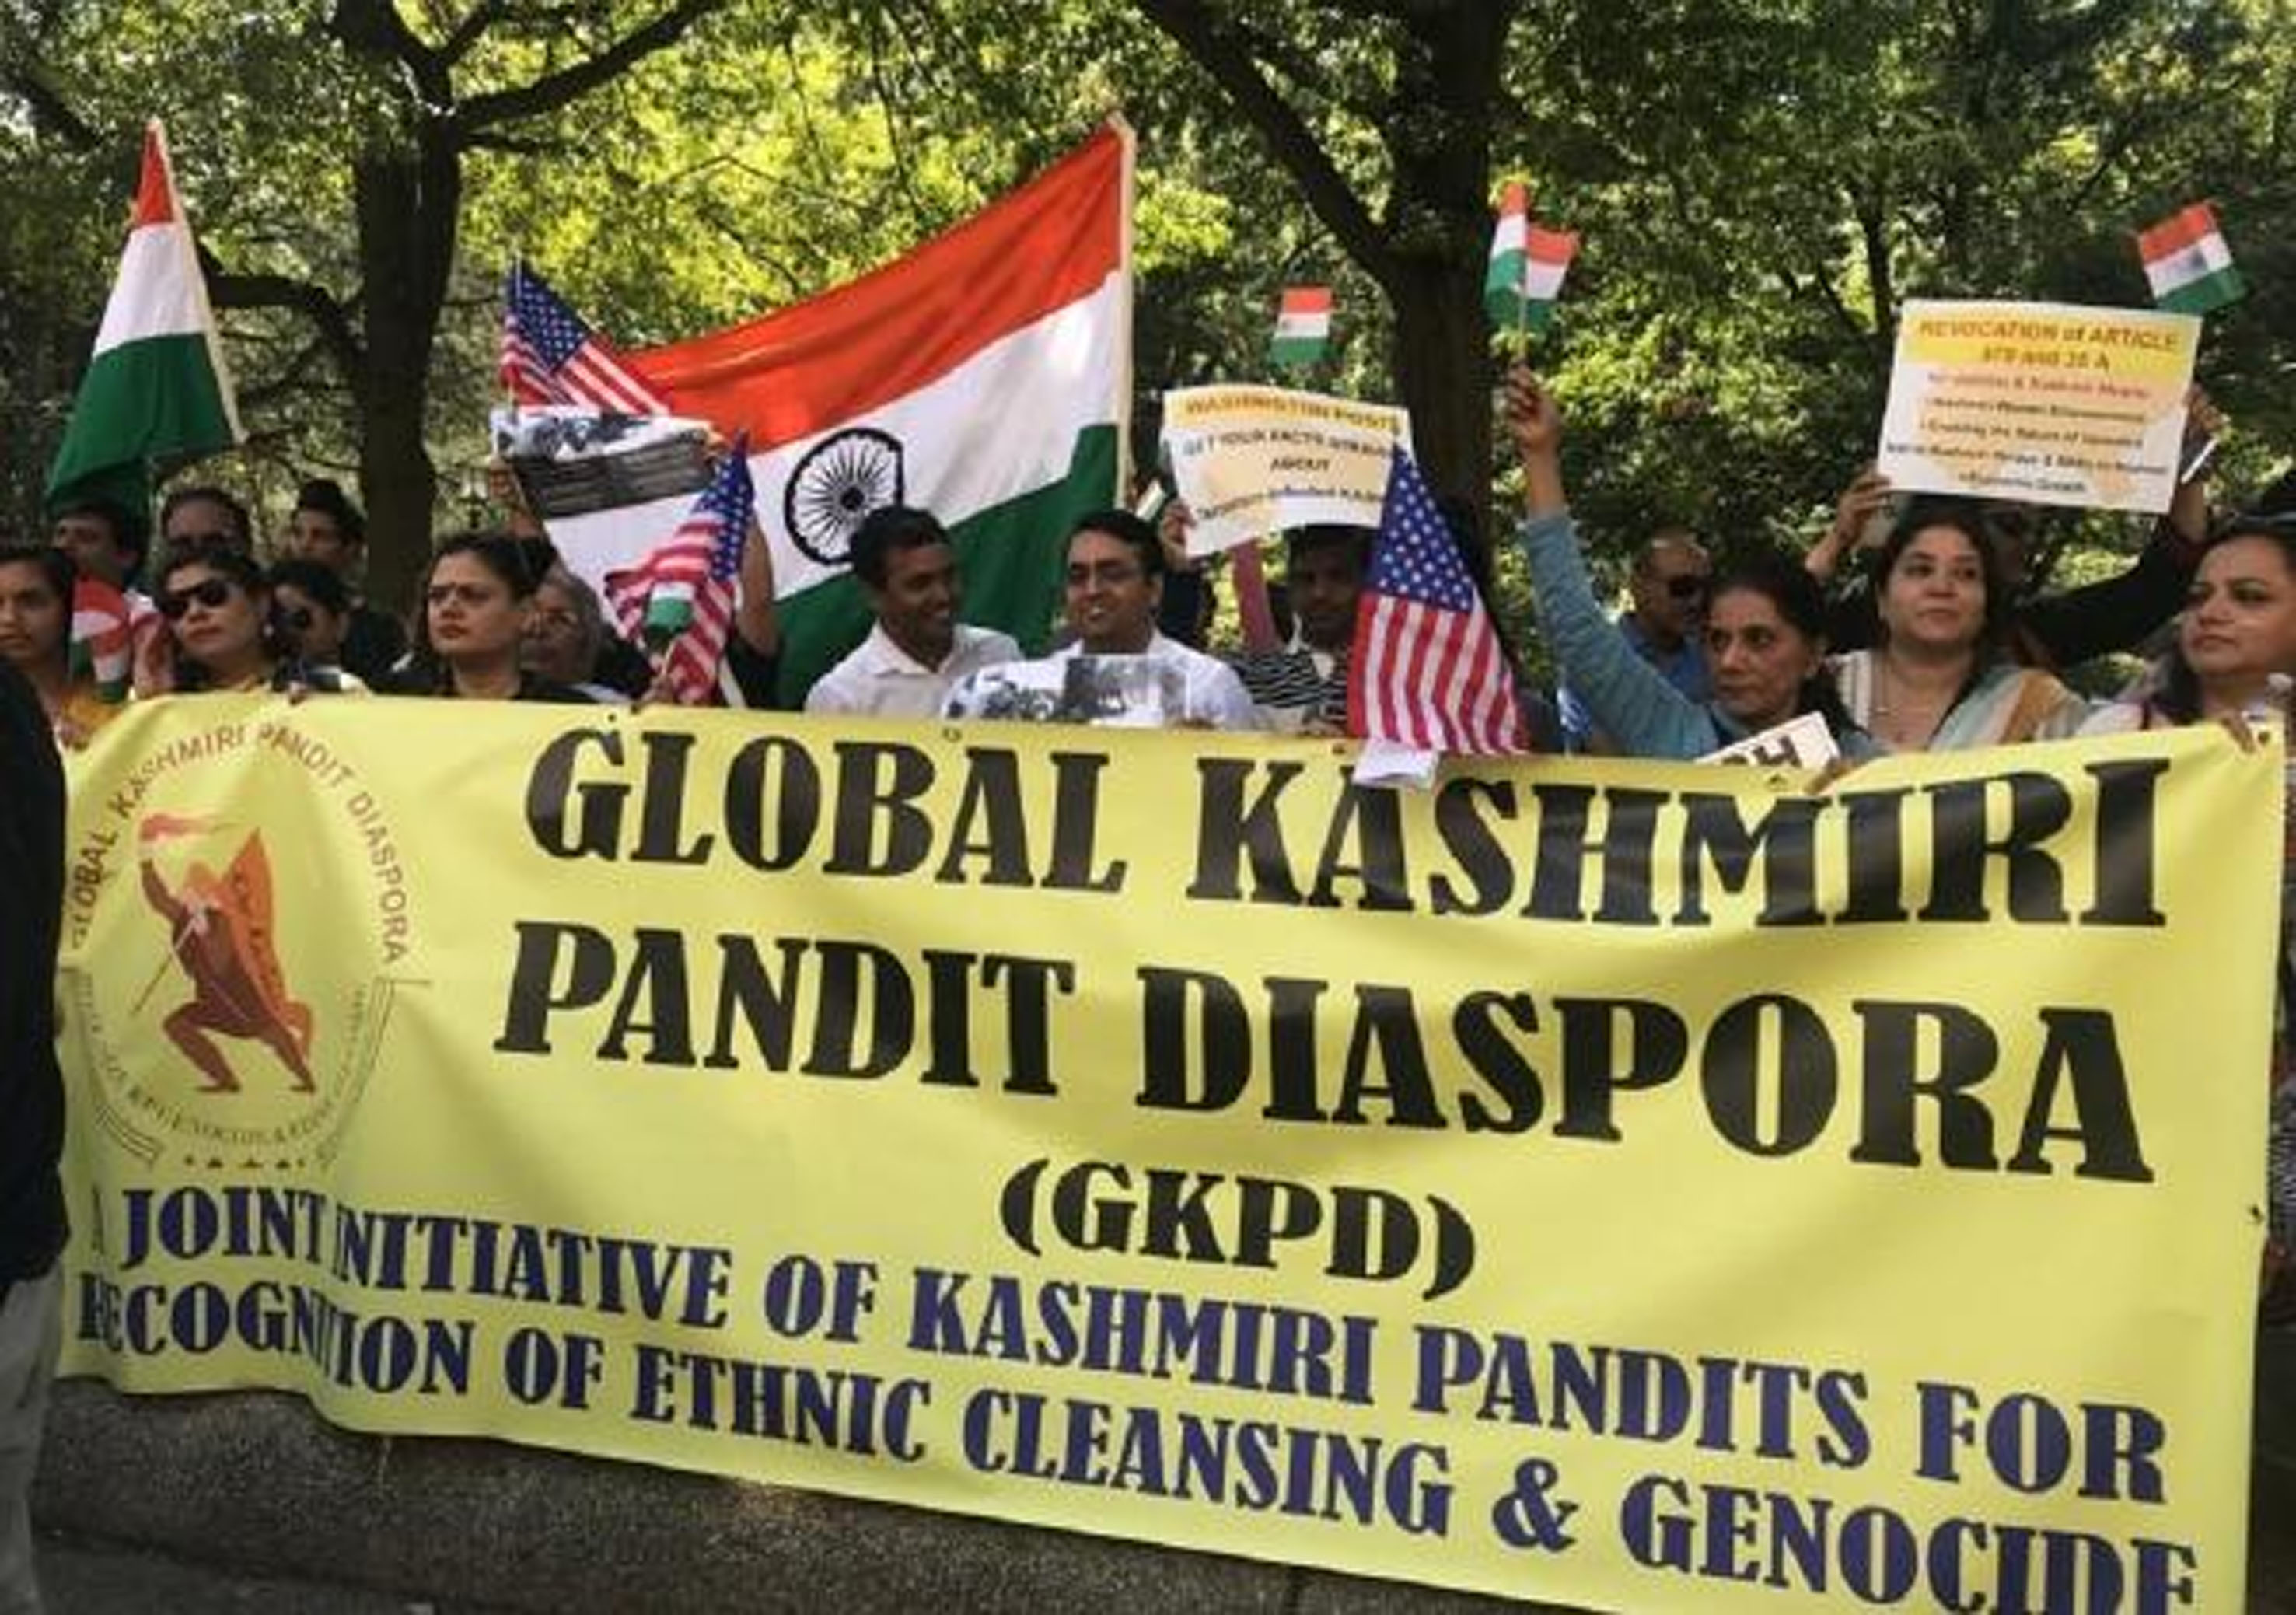 Members from the Kashmiri Pandit community staged protest against 'The Washington Post' for unfair coverage of recent developments in Jammu & Kashmir.